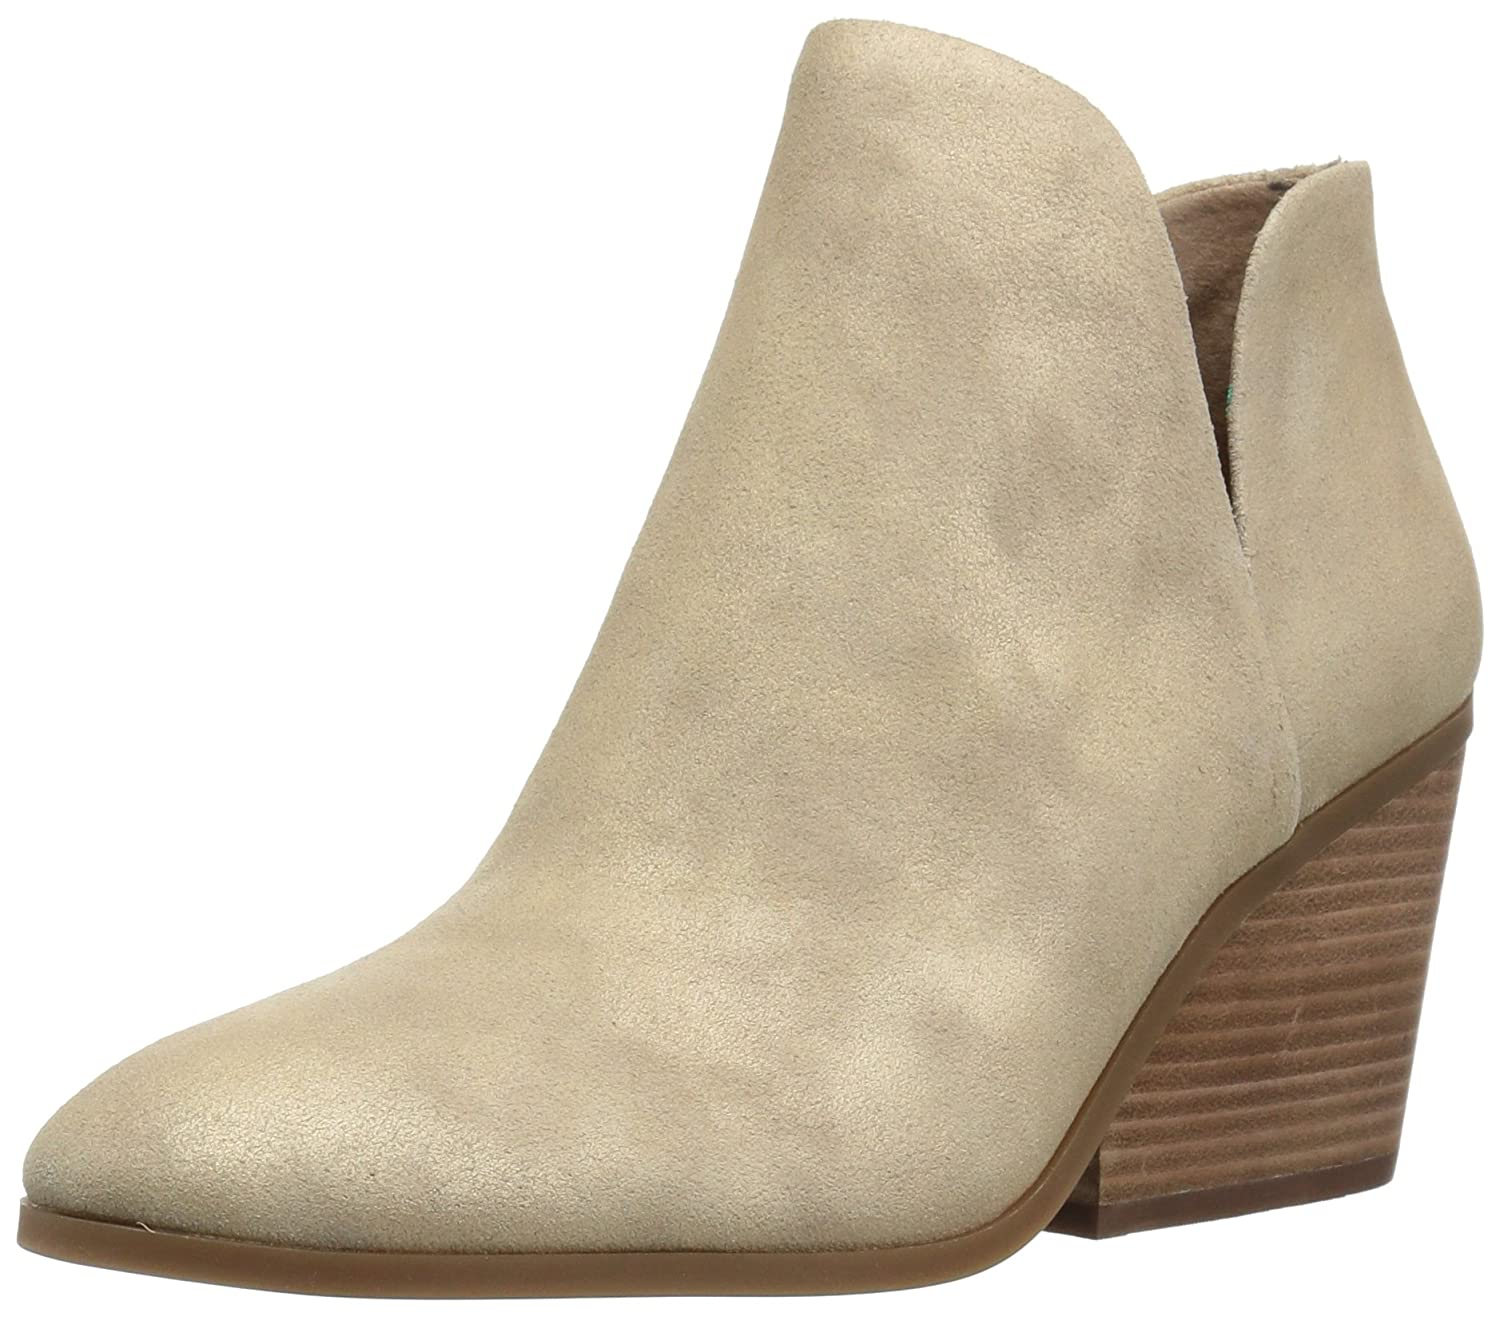 Lucky Brand Women's Lezzlee Ankle Boot B0747JFFJS 5.5 M US|Travertine